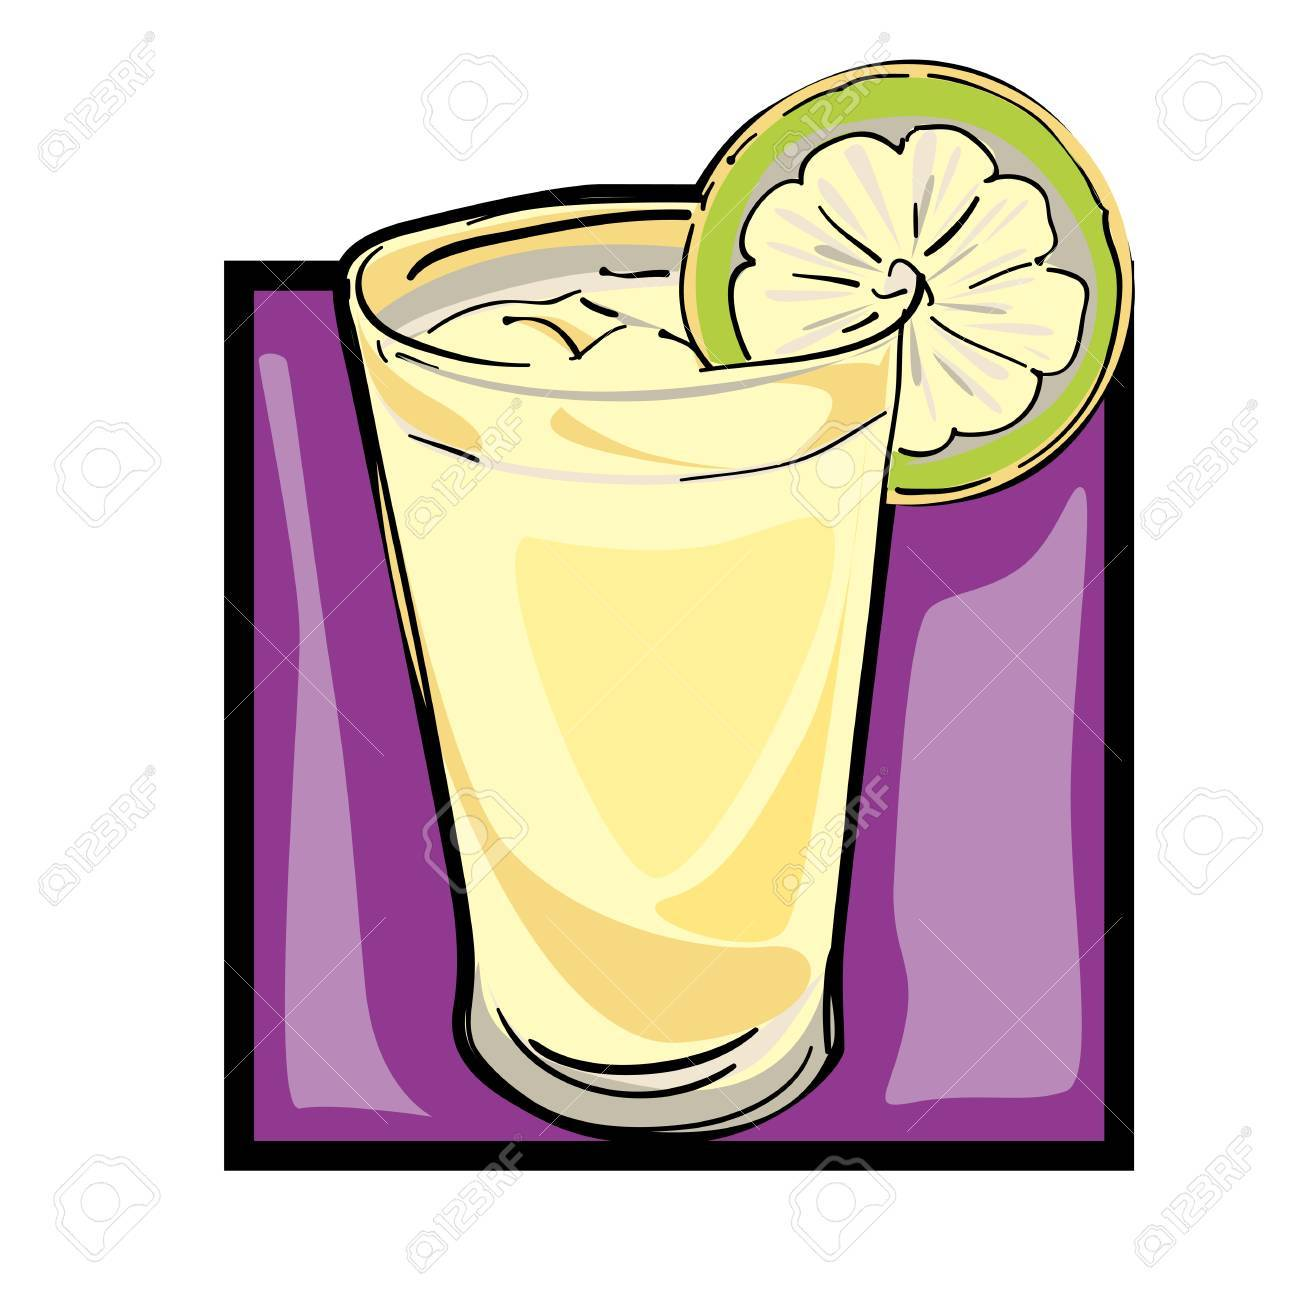 1300x1300 Classic Clip Art Graphic Icon With Lemonade Royalty Free Cliparts